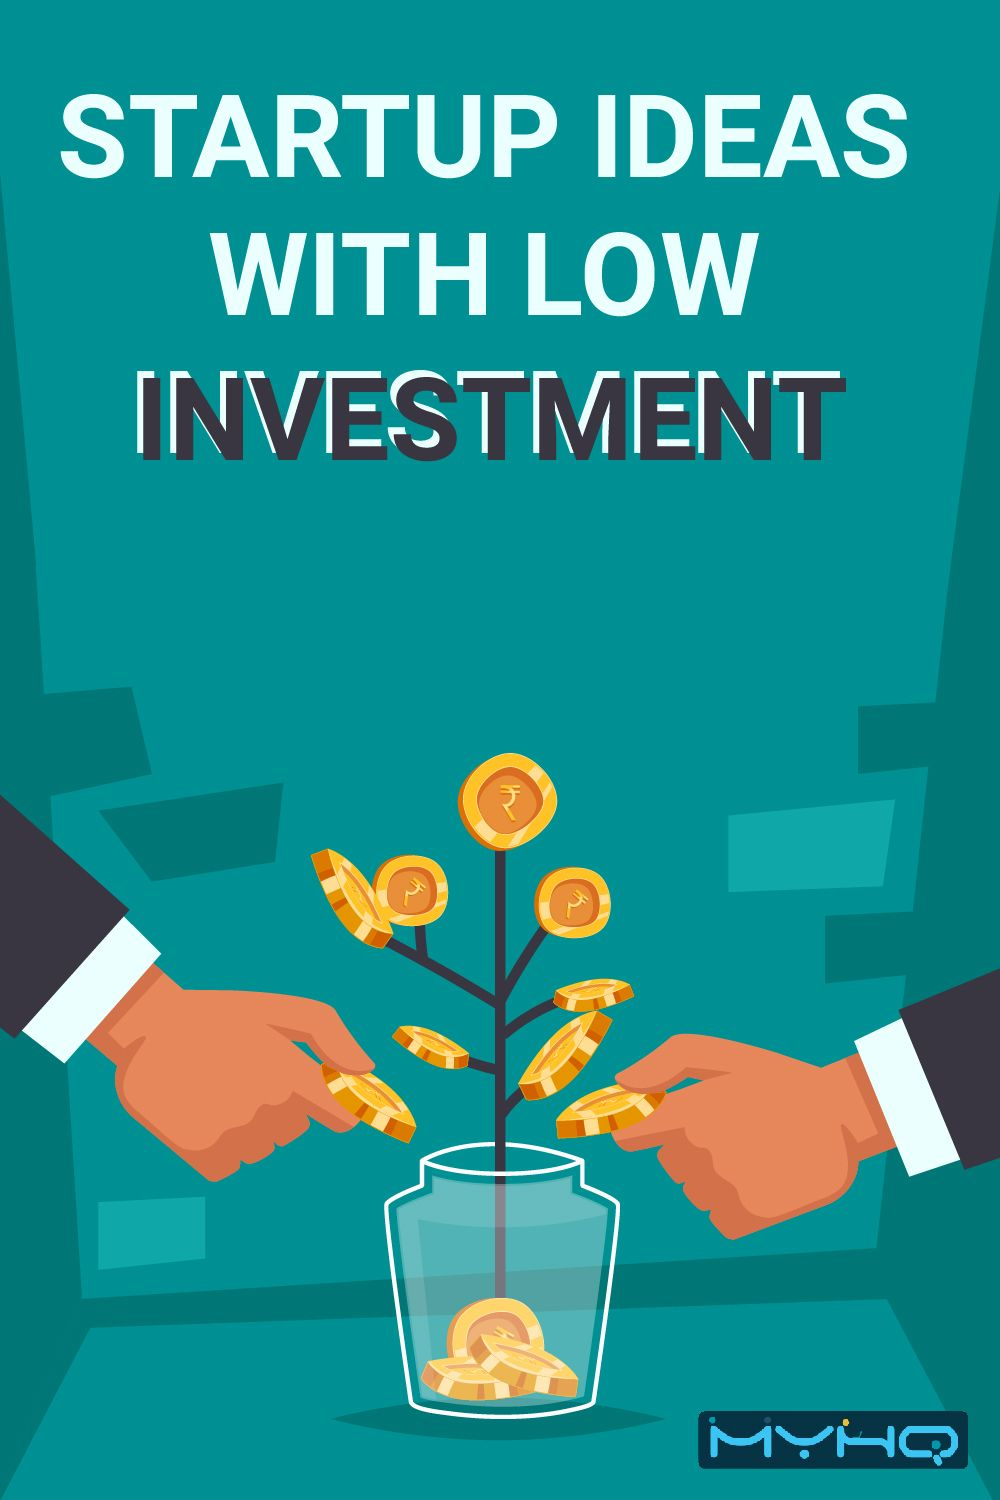 how to start a small business with less investment